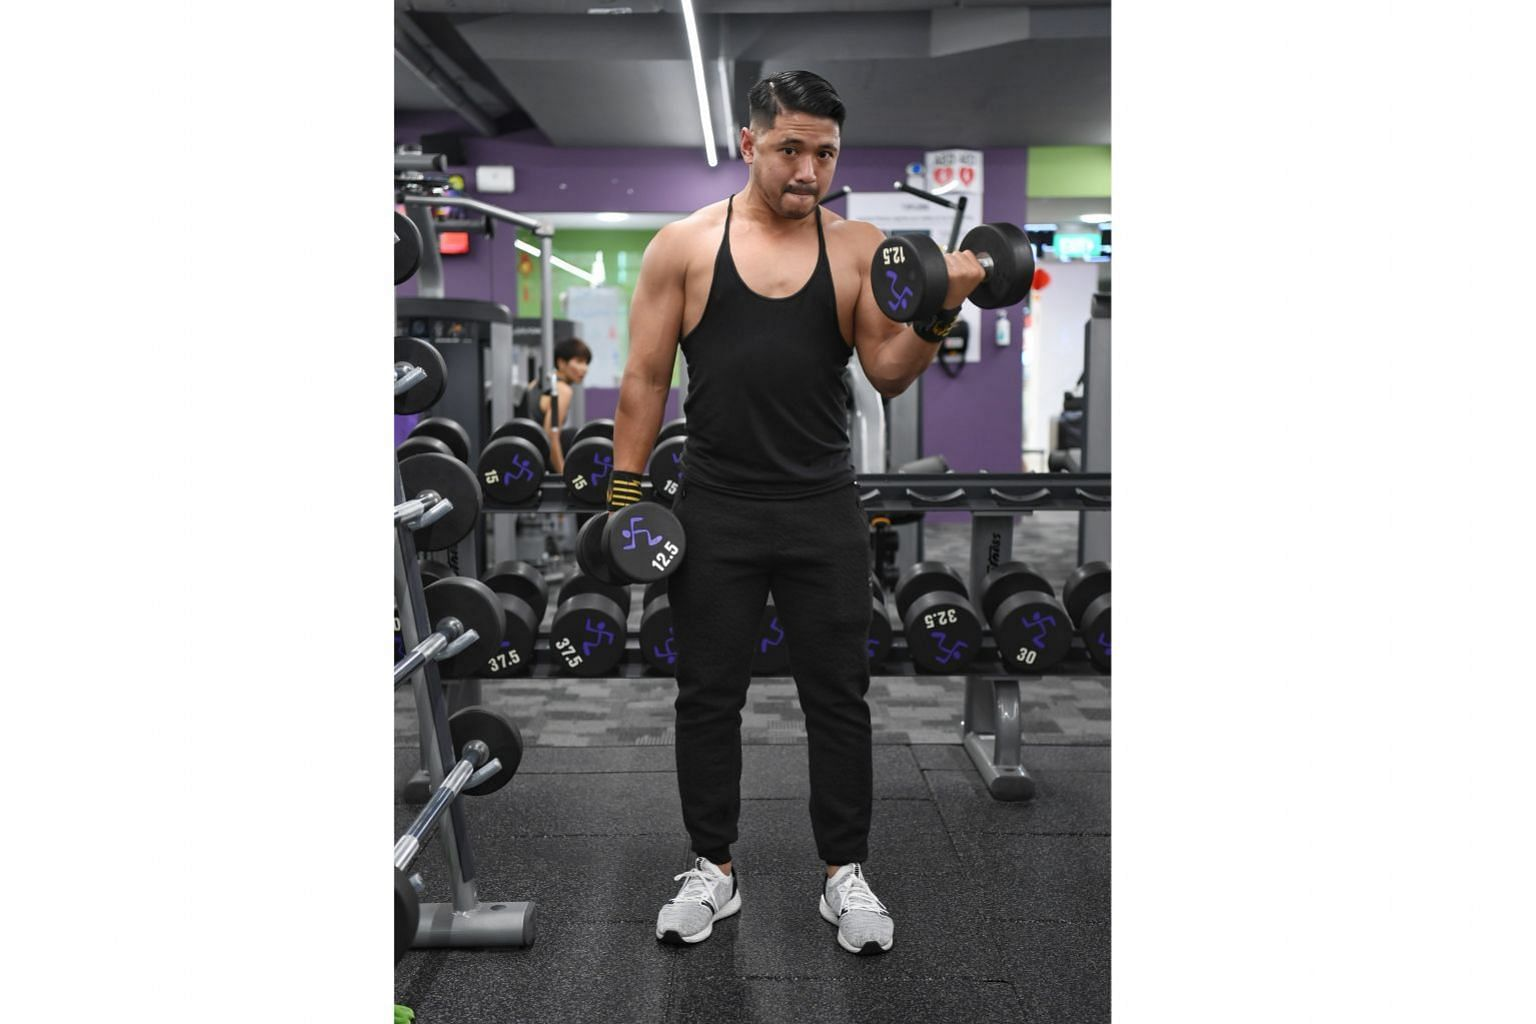 Mr Muhammad Subhi Ismani says his fitness routine boosts his self-confidence and keeps him alert at work.